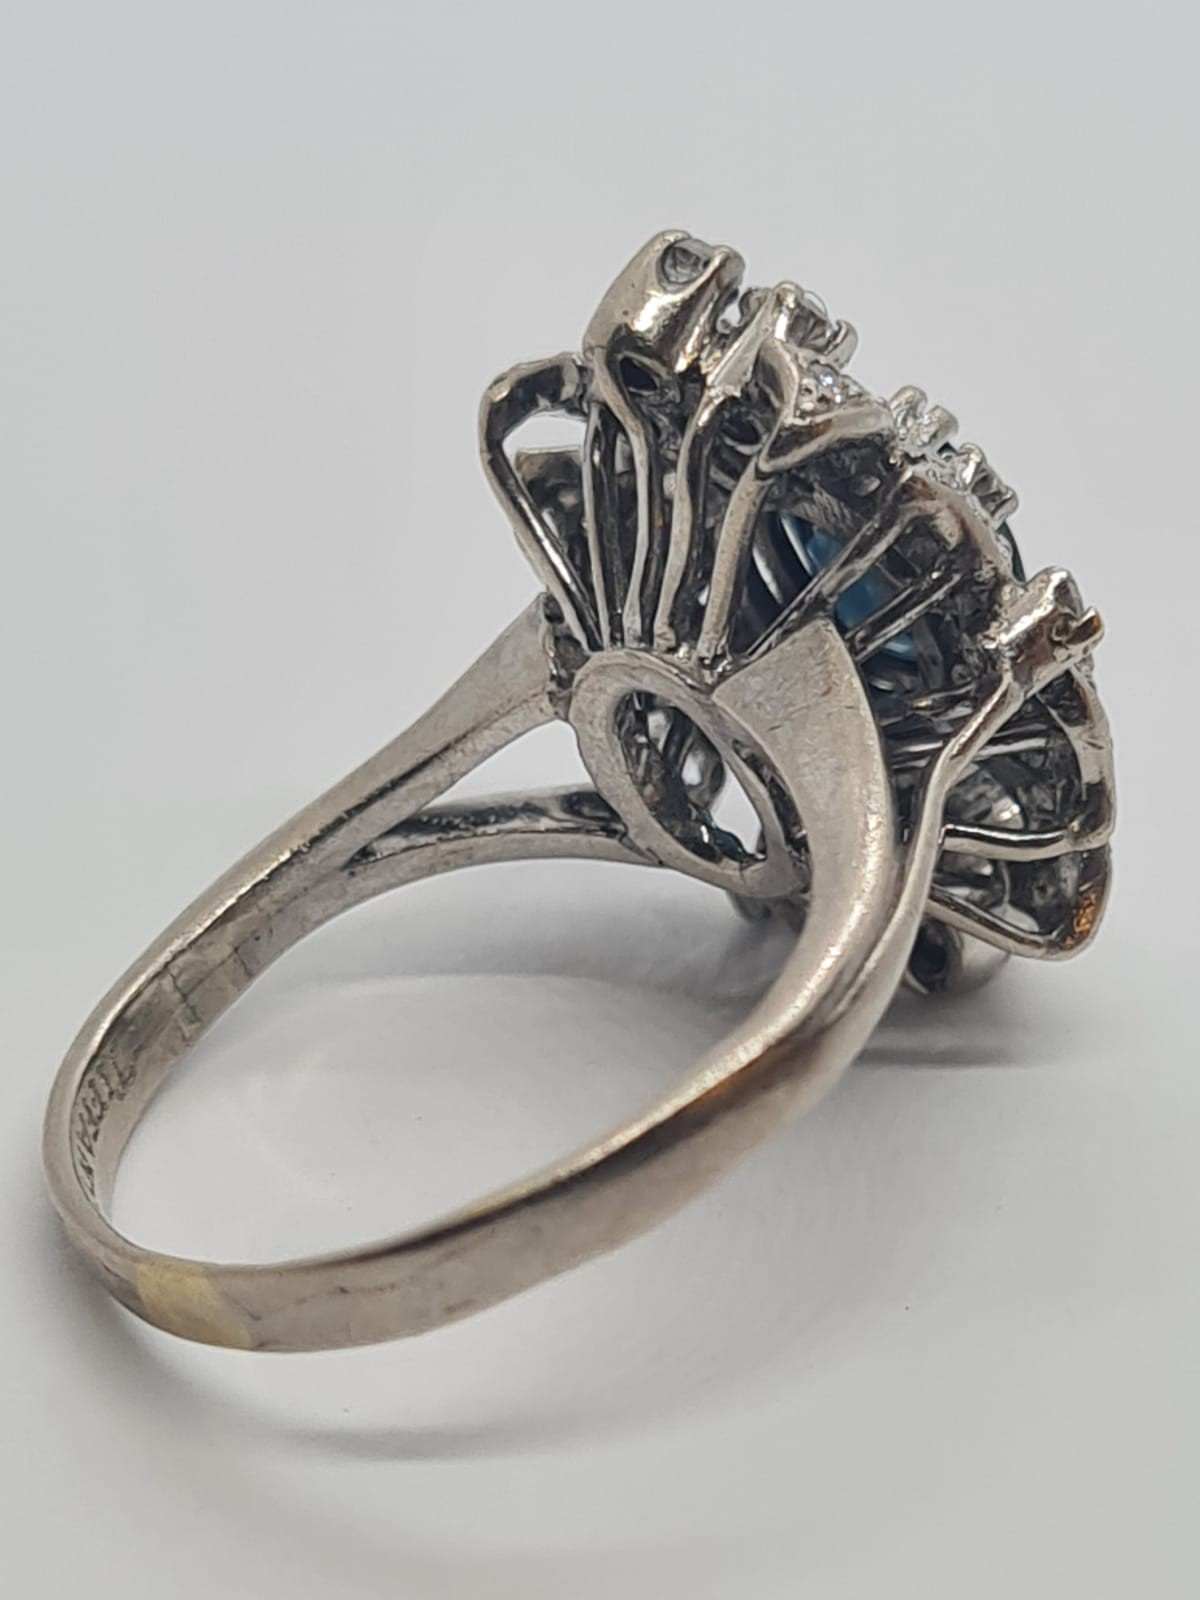 14k white gold diamond cluster ring with sapphire centre marked Tiffany & Co , weight 6.2g and - Image 3 of 7